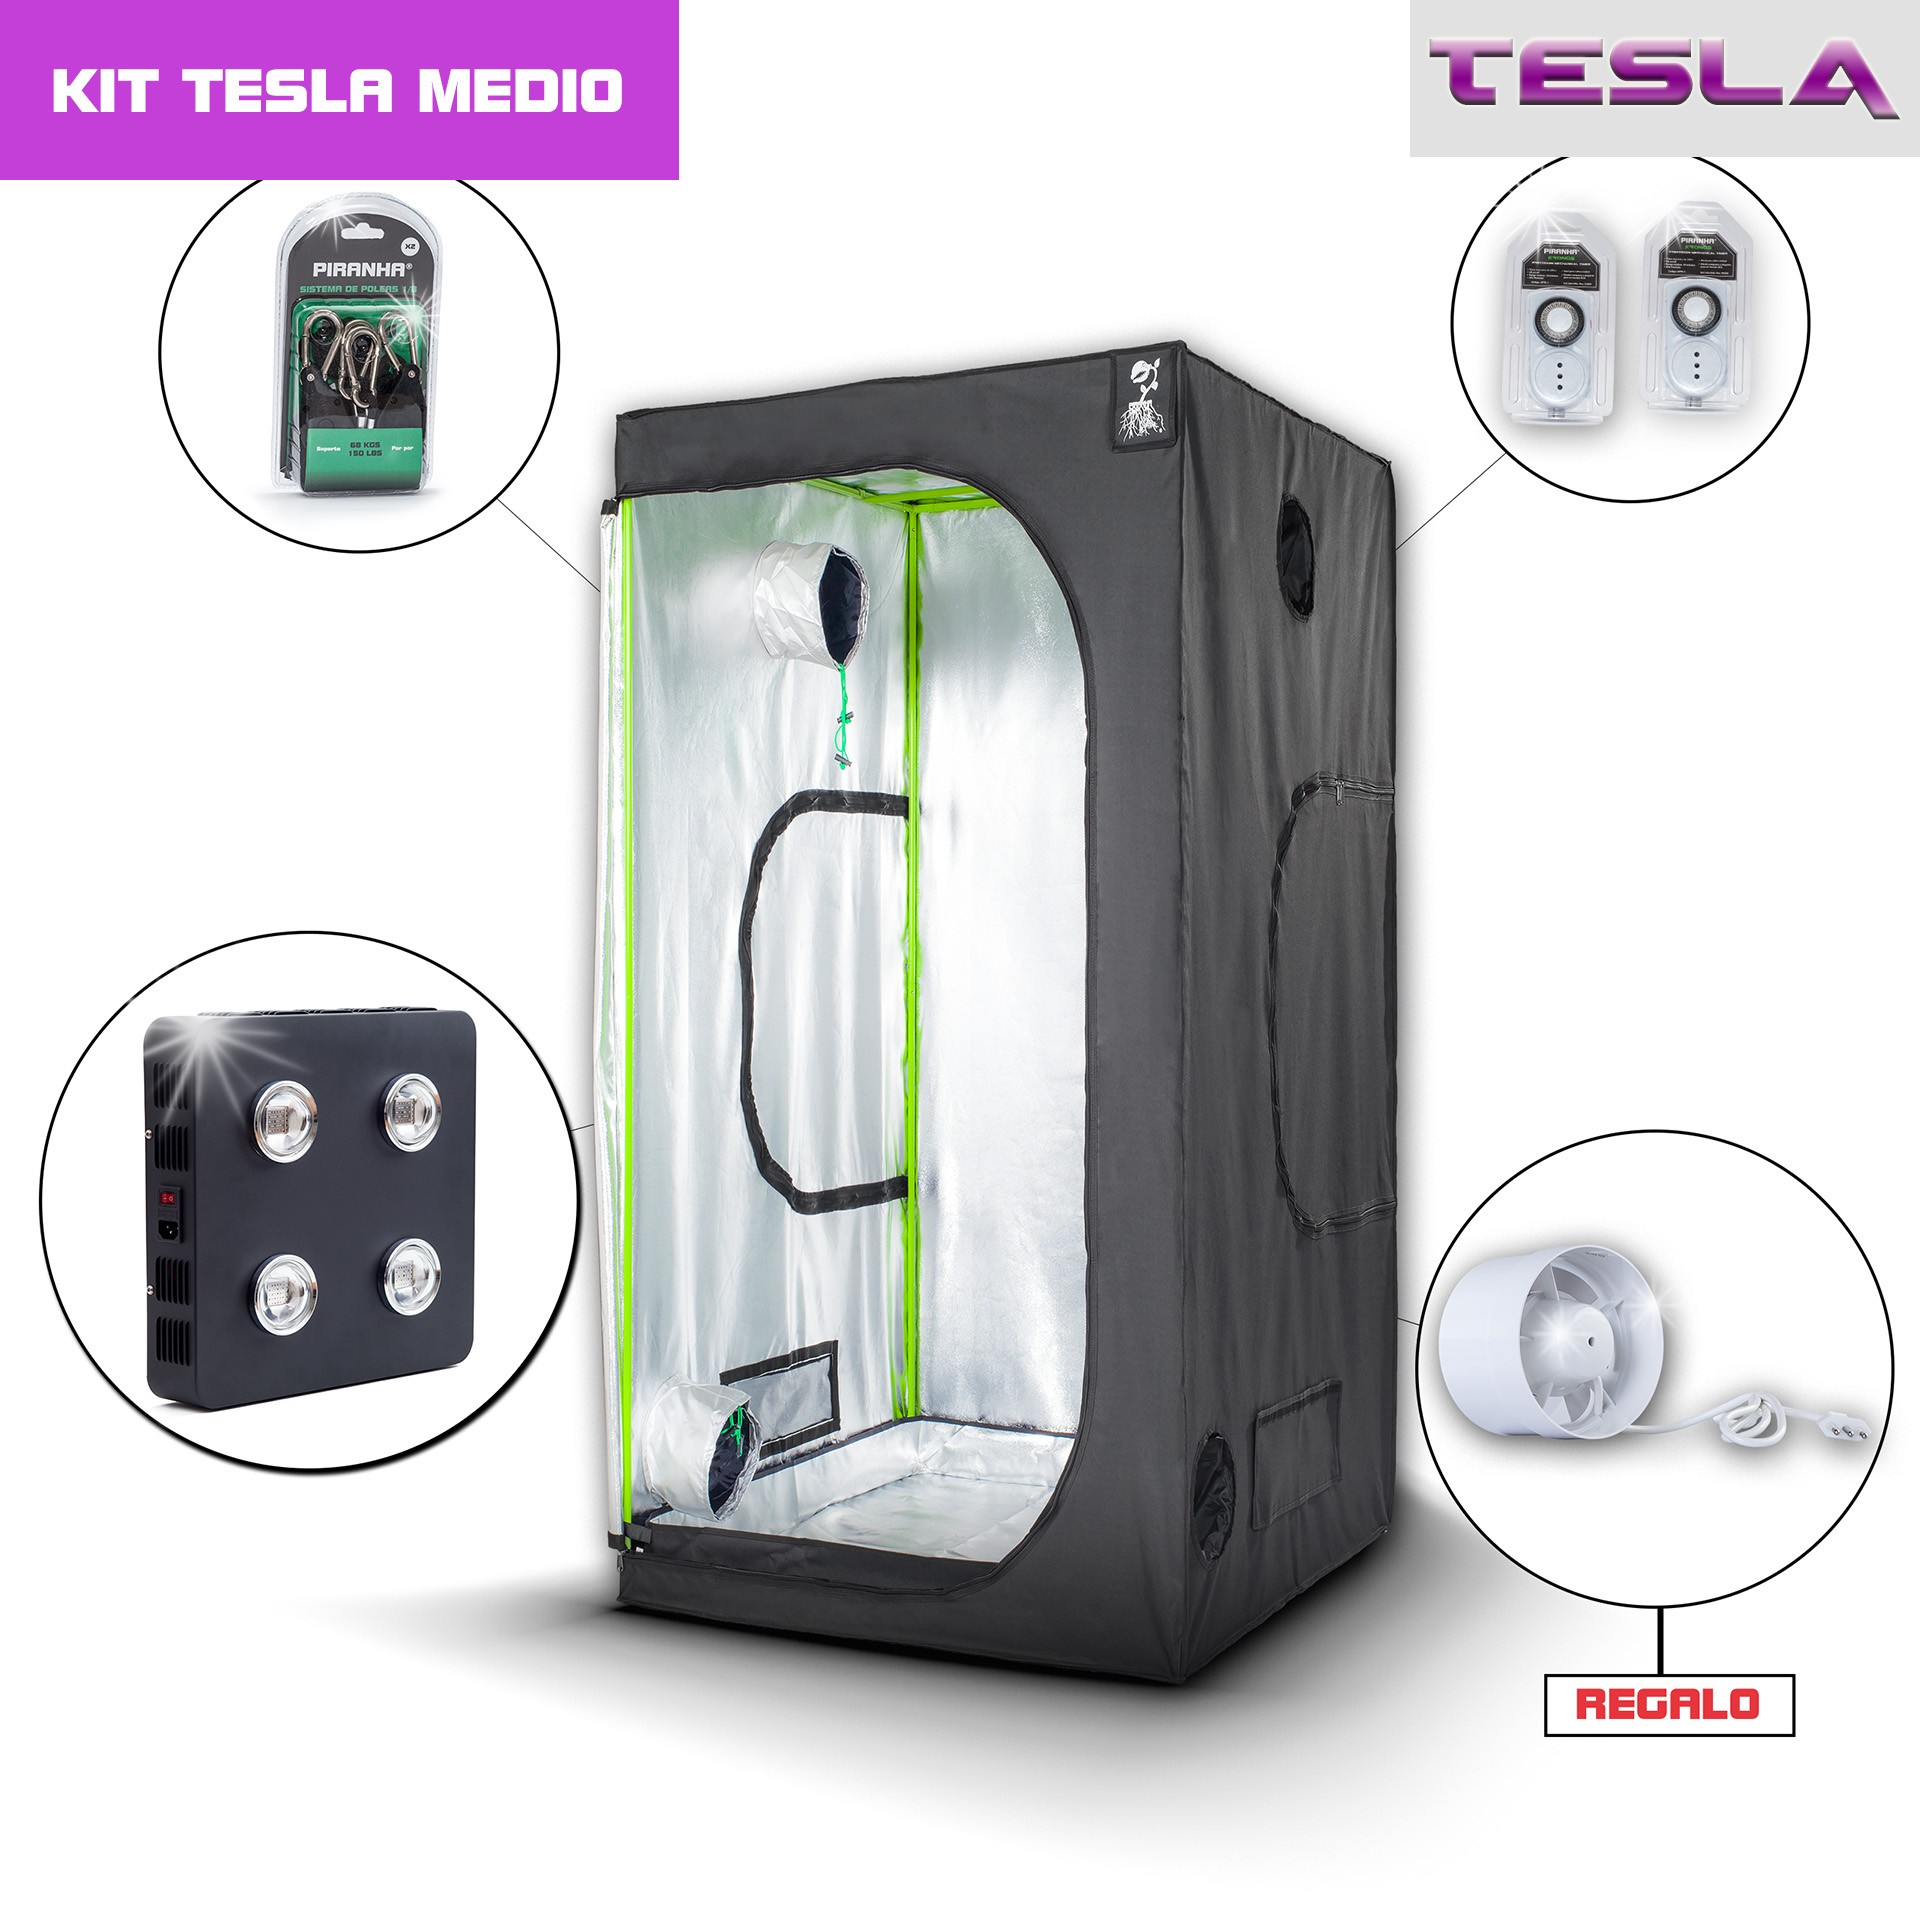 Kit Tesla 100 - T360W Medio